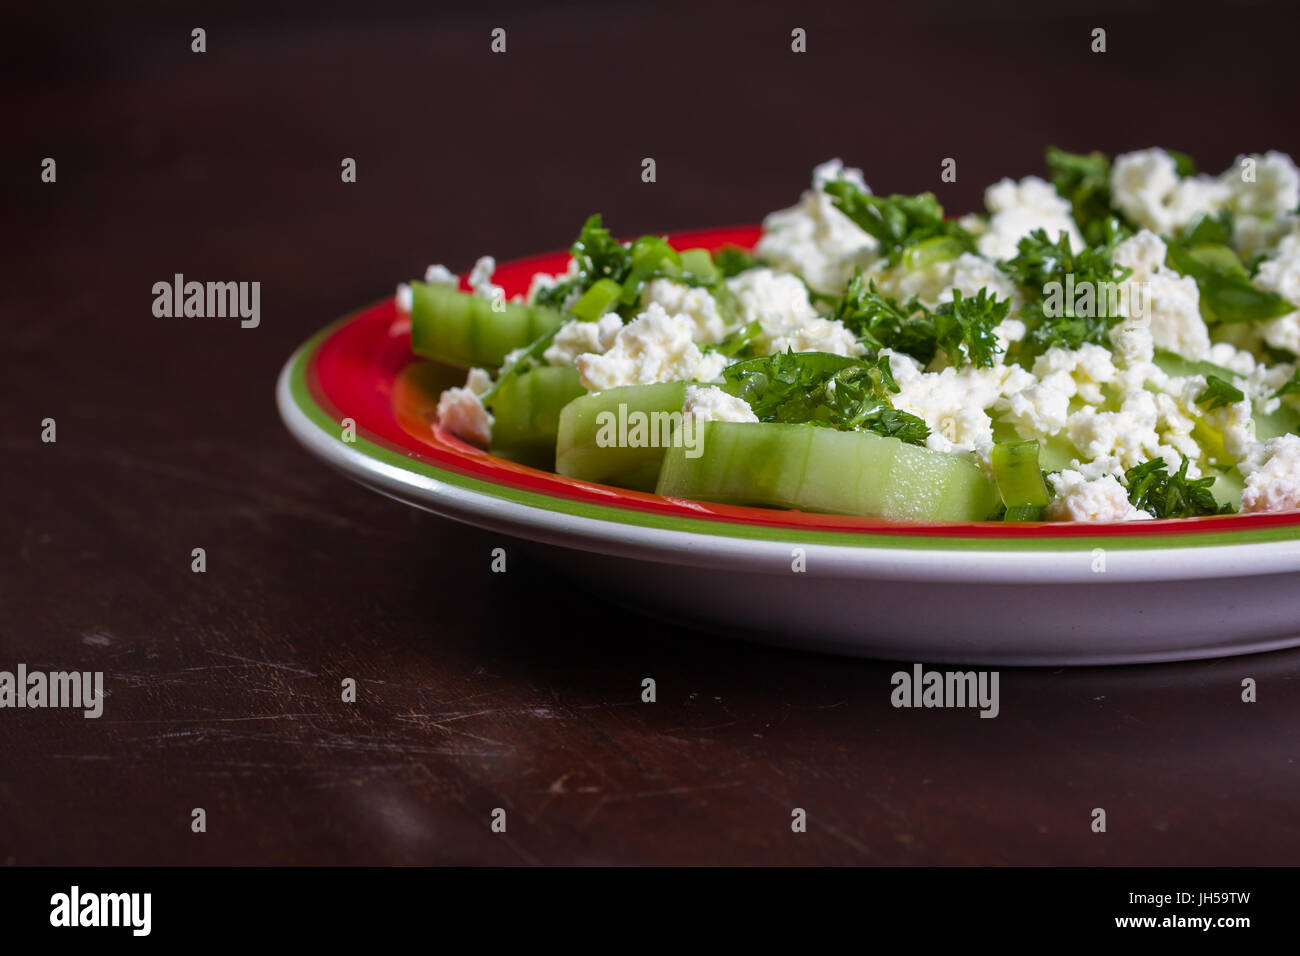 close up of a cucumber and feta cheese salad topped with green onion and parsley dressed with olive oil and lemon - Stock Image